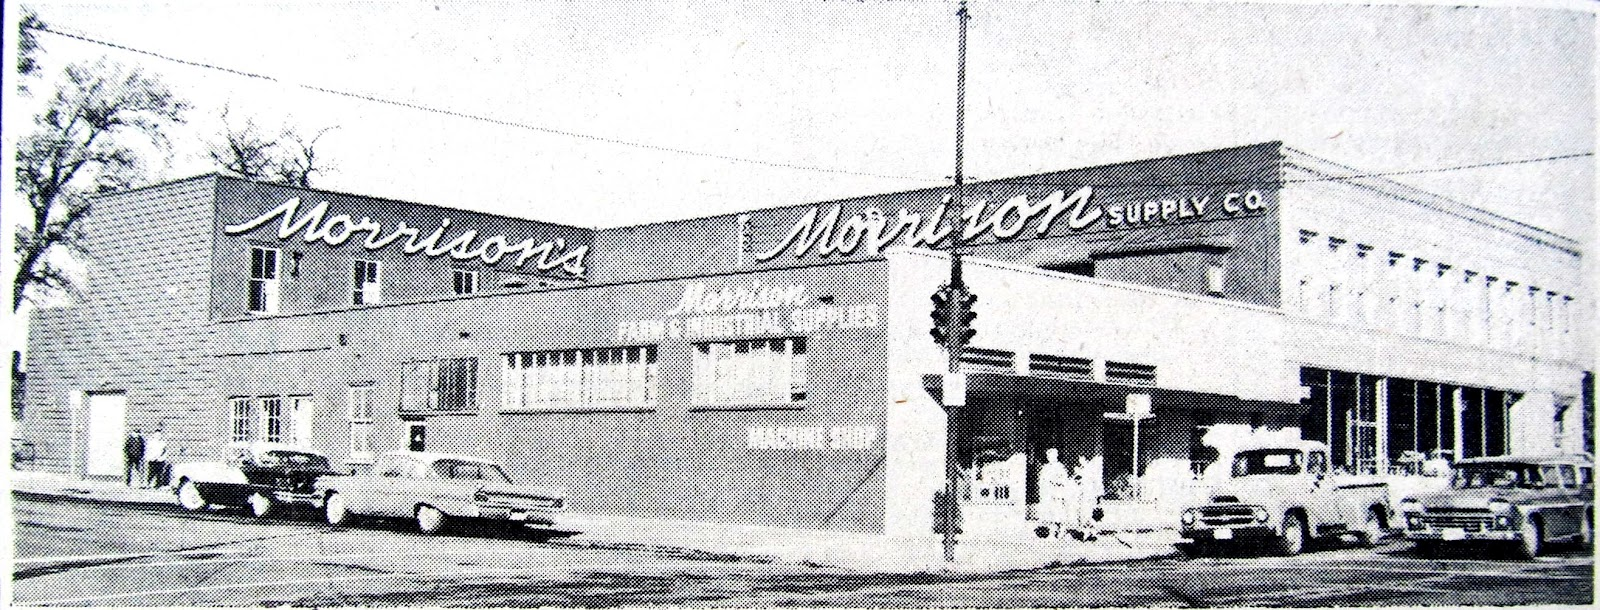 Wagons in vintage street scenes page 907 station wagon for Morrison supply